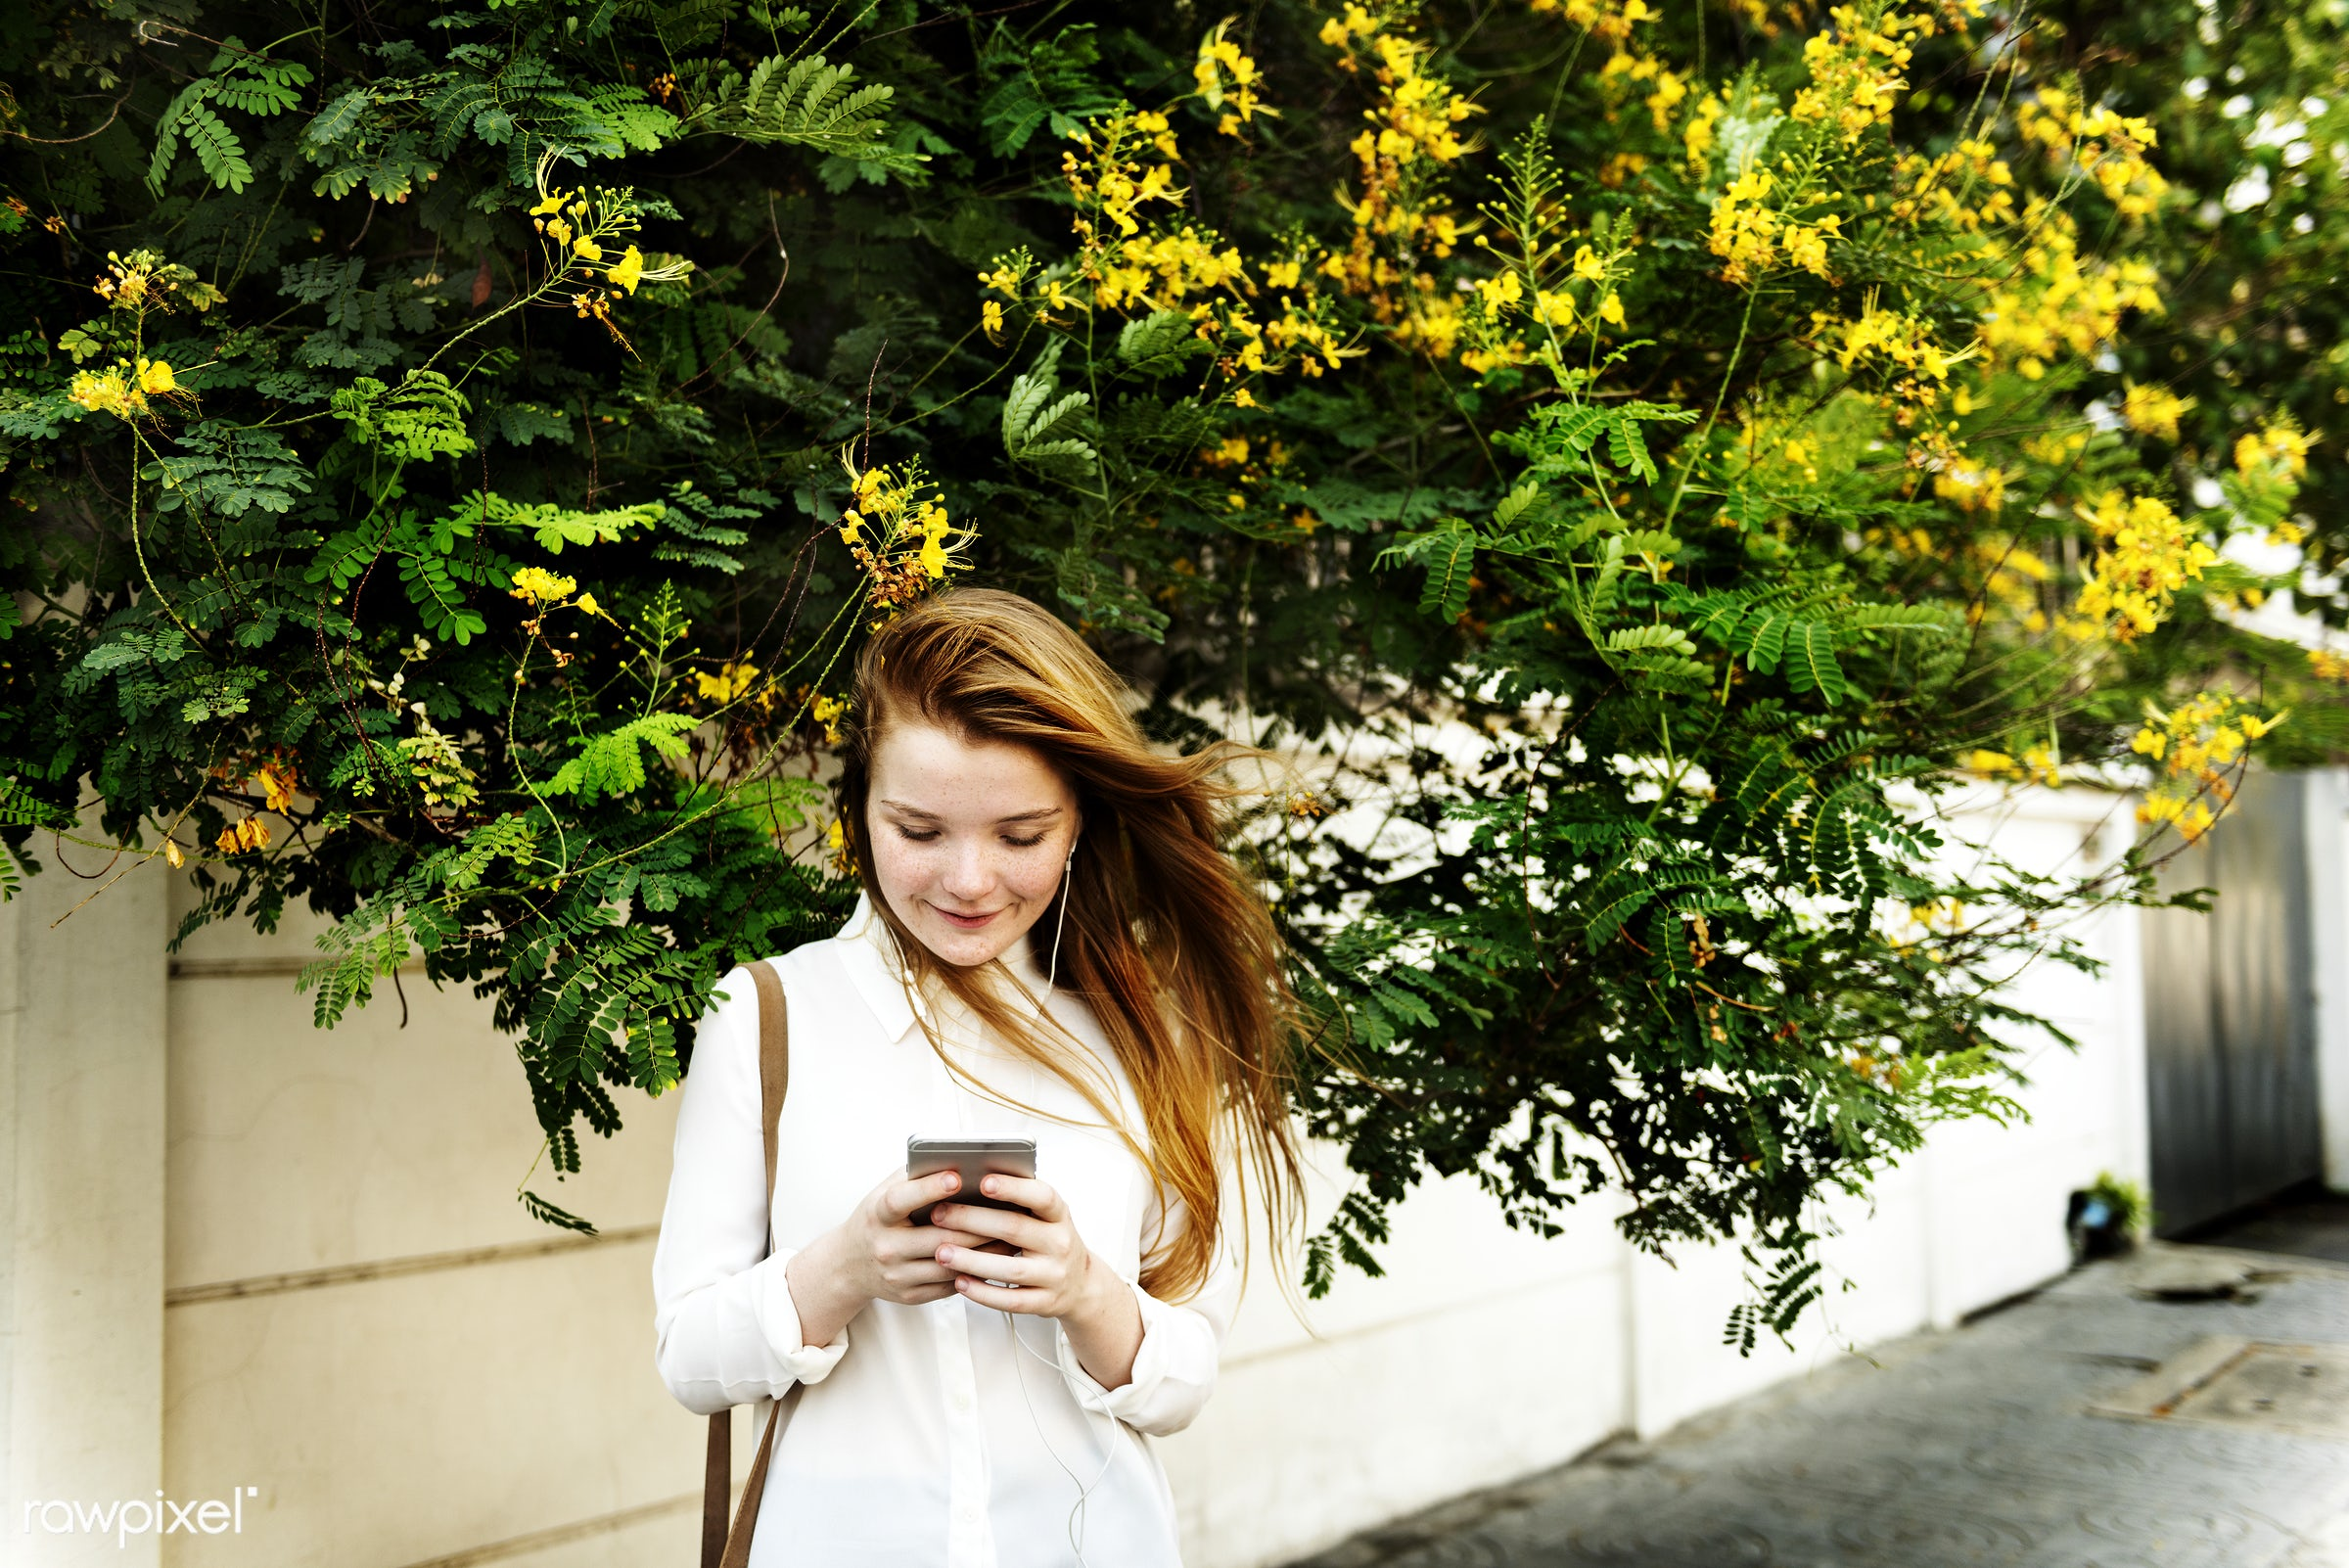 summer, style, teen, traveler, alone, attractive, casual, cheerful, connecting, day, device, digital, enjoyment, experience...